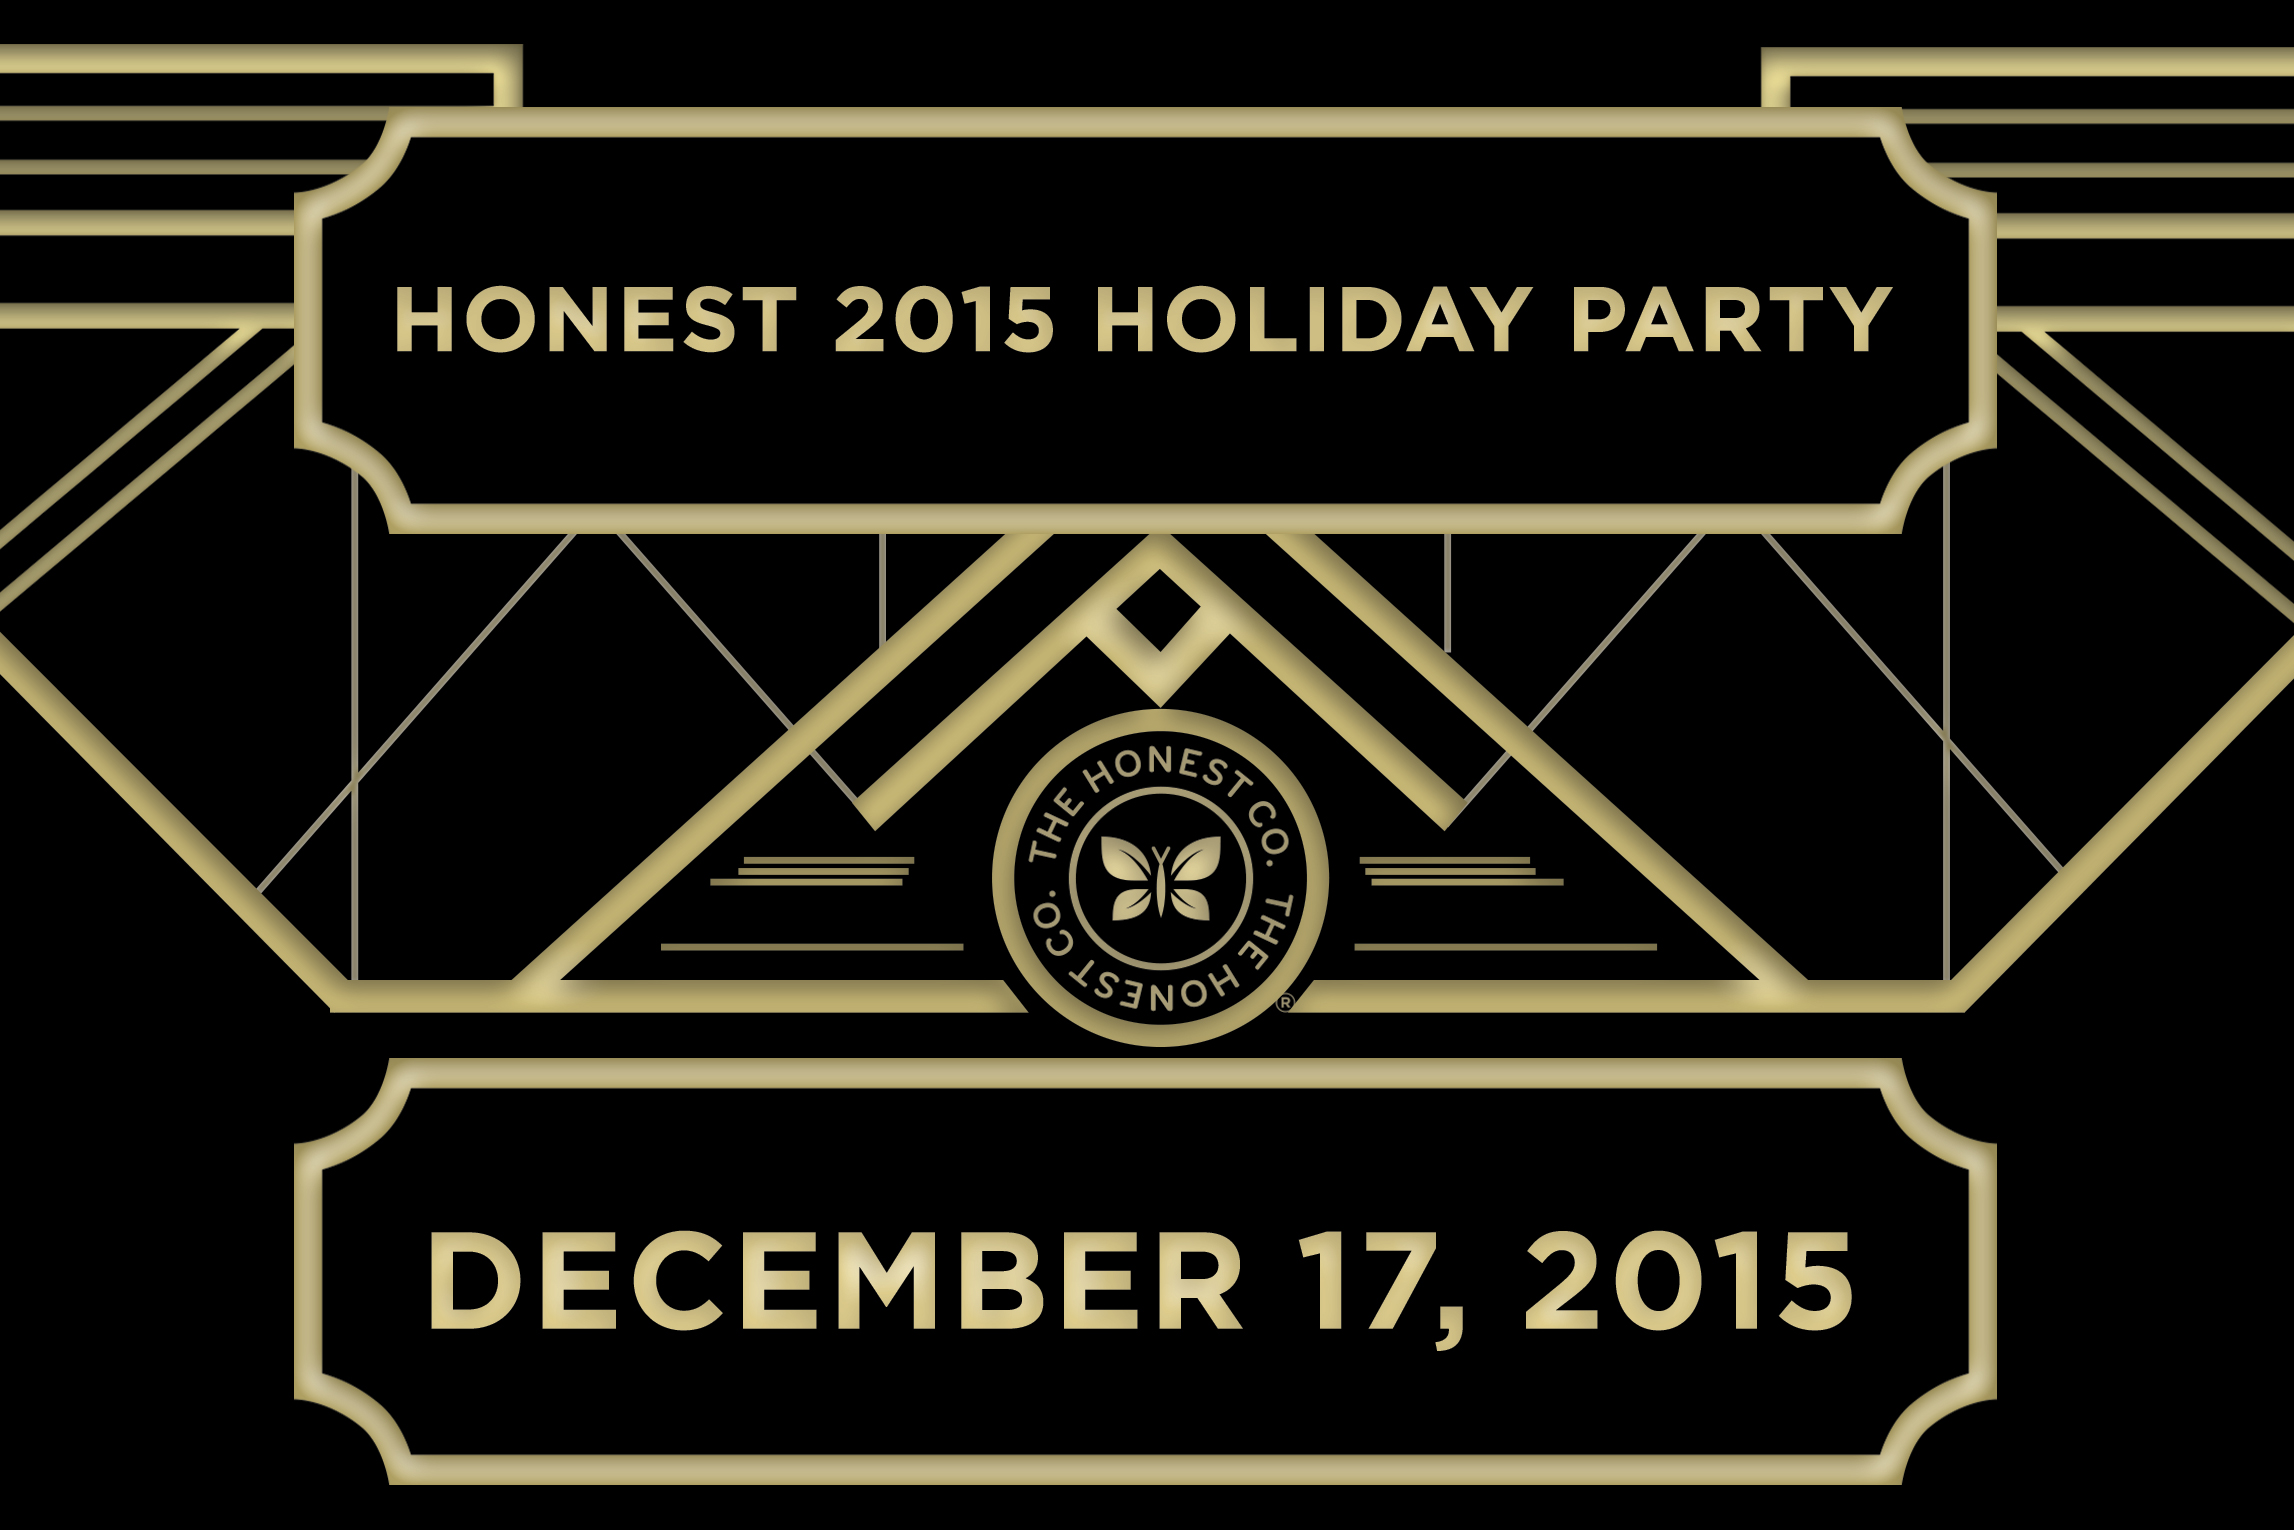 121715_HonestHoliday-cover.jpg